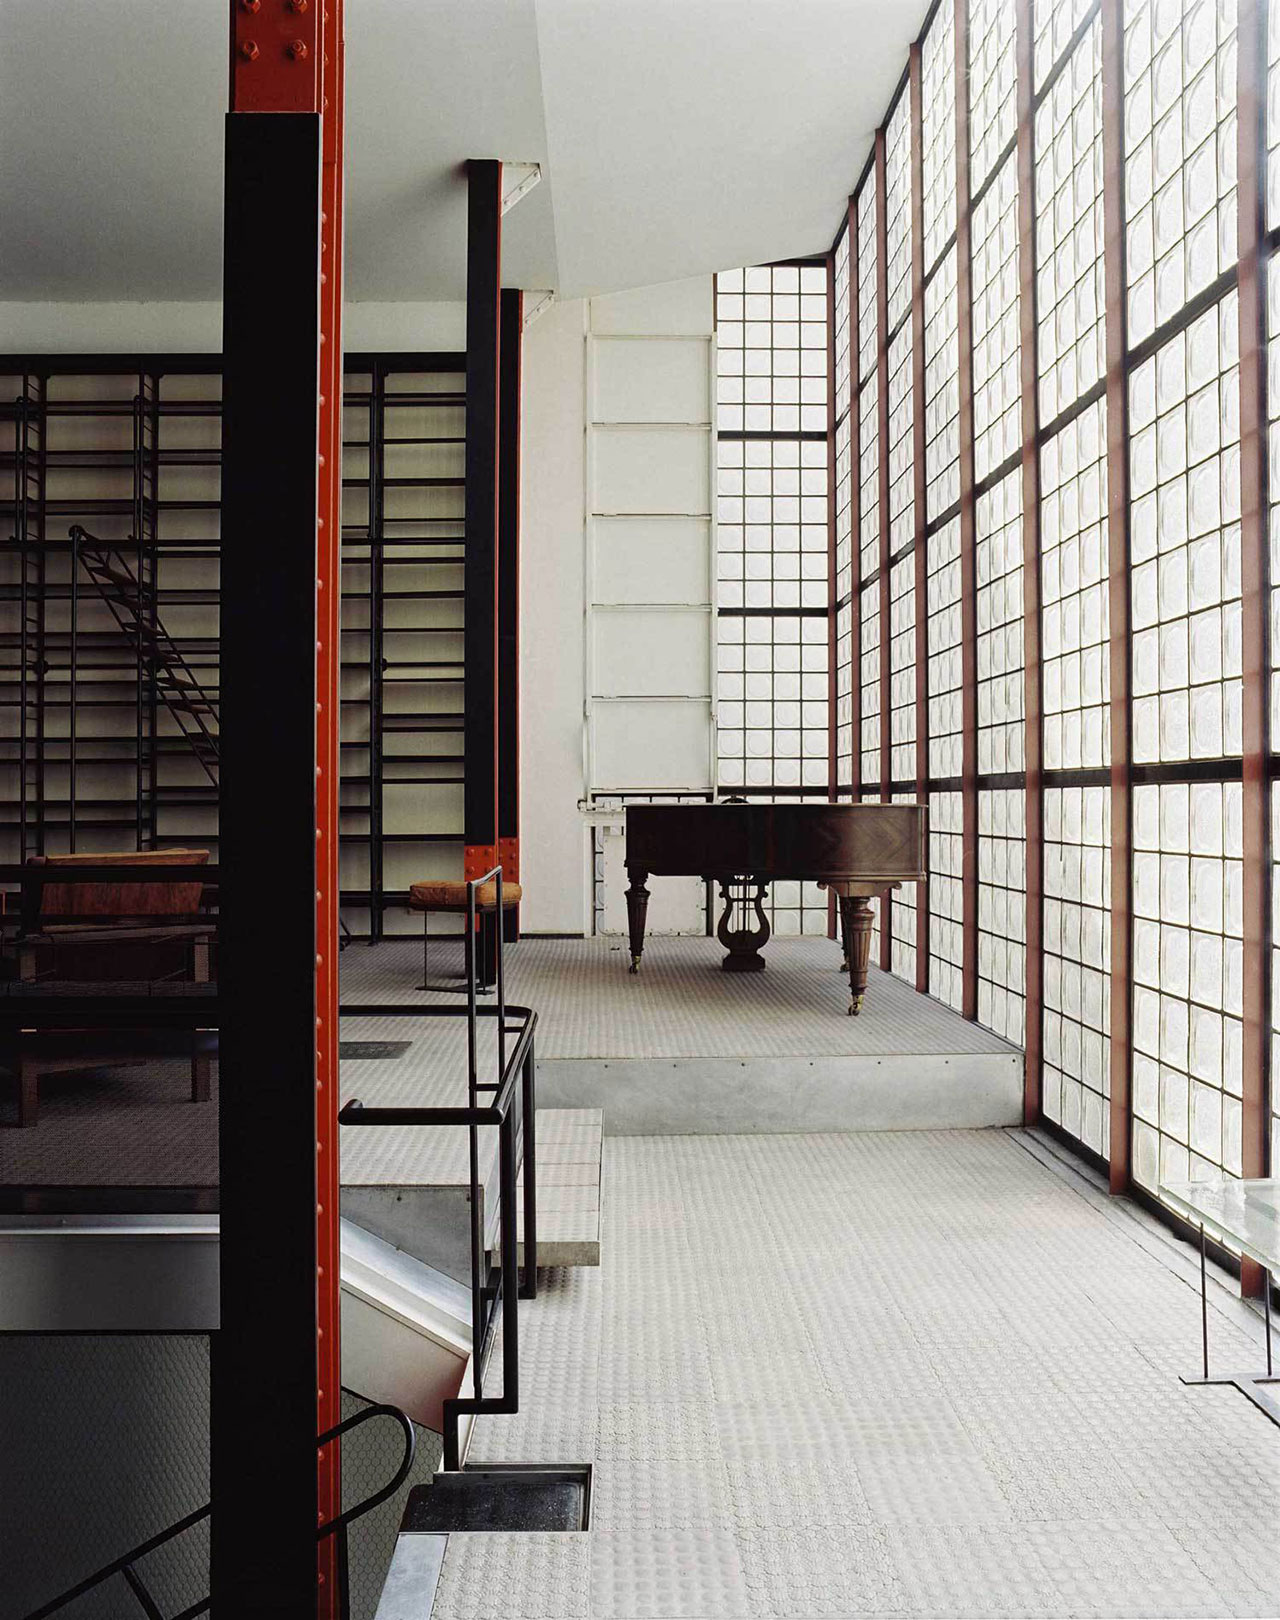 maison de verre an avant garde glass house in paris photo francois